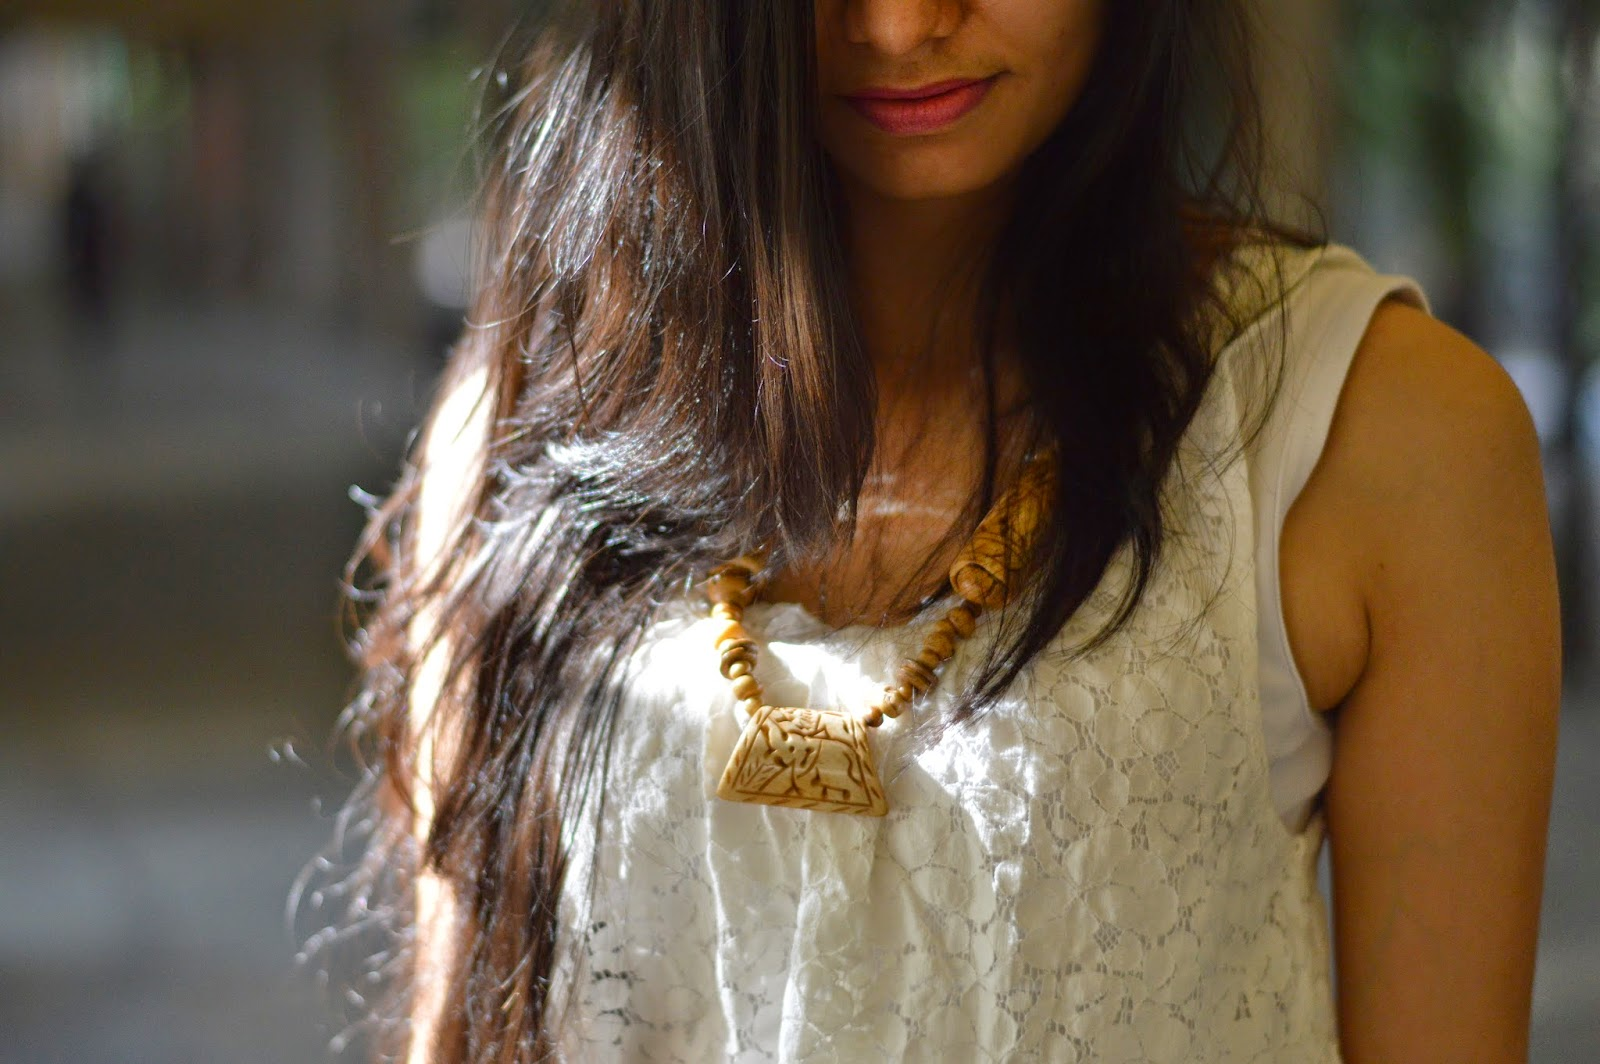 statement necklace, native indian necklaces, mumbai streetstyle, lace vest, mumbai fashion blogger, indian fashion blog, mumbai streetstyle, looks for less, street shopping in mumbai